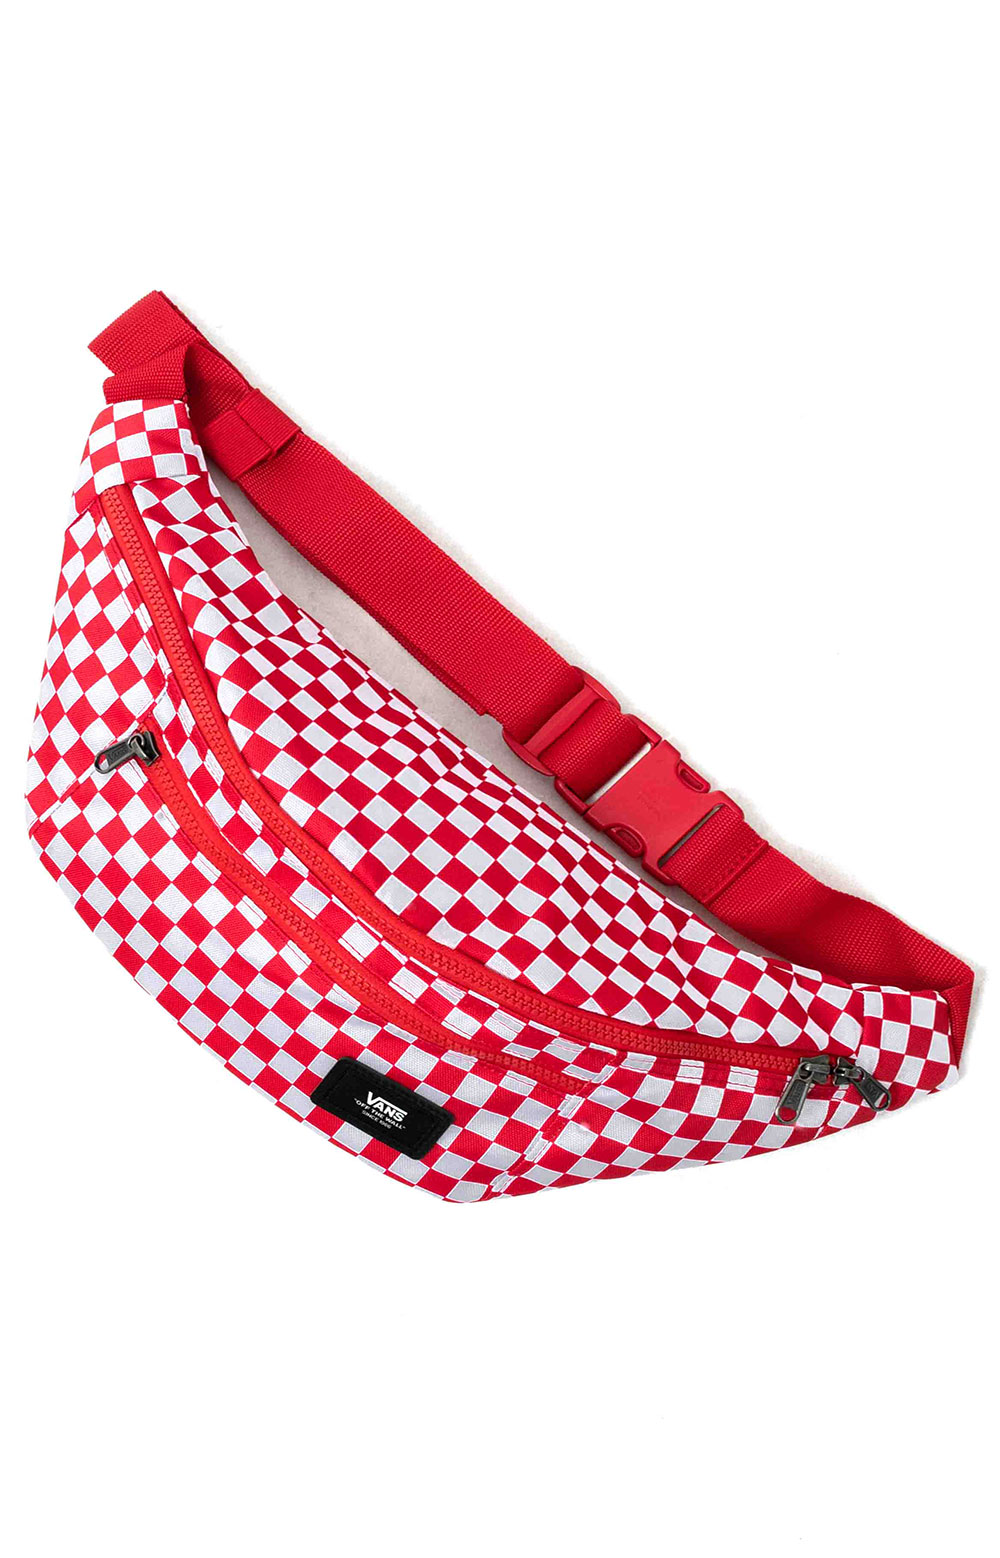 Ward Cross Body Pack - Red Check  2